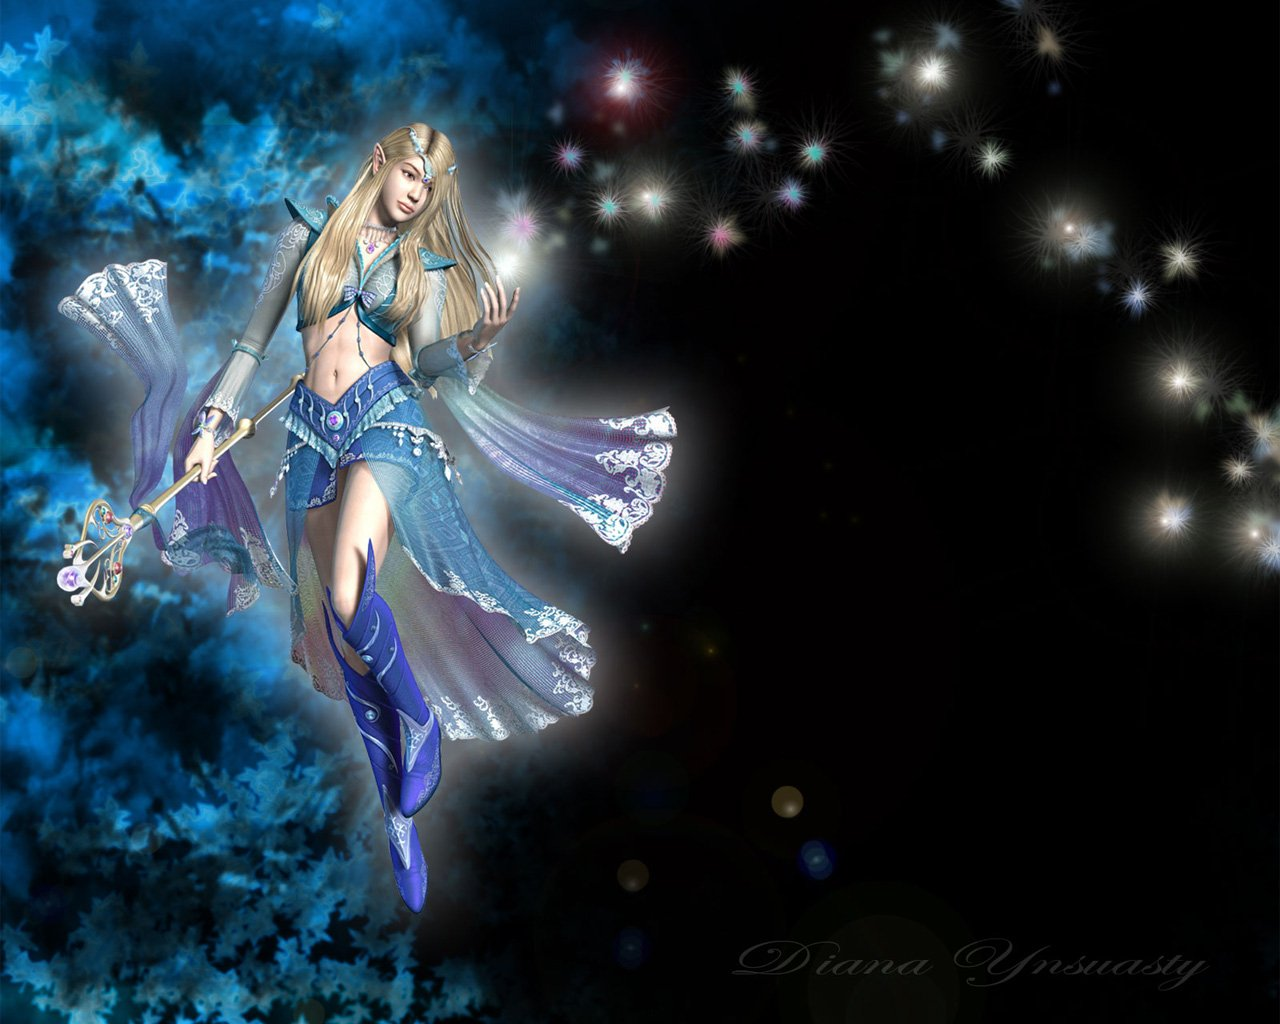 433 Fairy HD Wallpapers Background Images 1280x1024